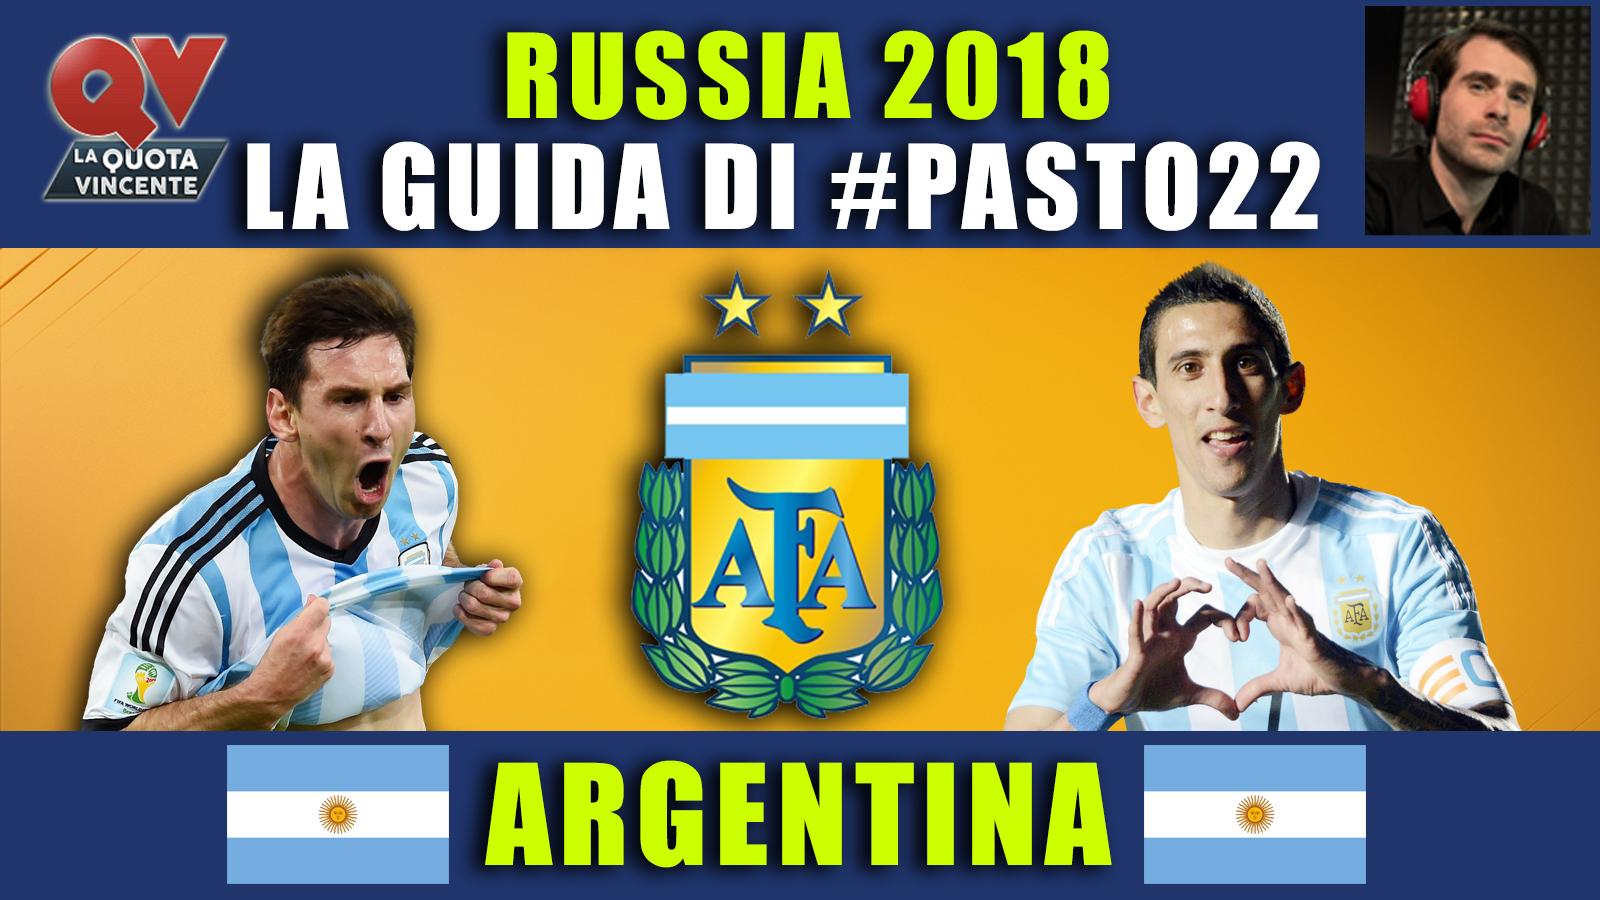 https://www.laquotavincente.it/guida-mondiali-russia-2018-argentina/